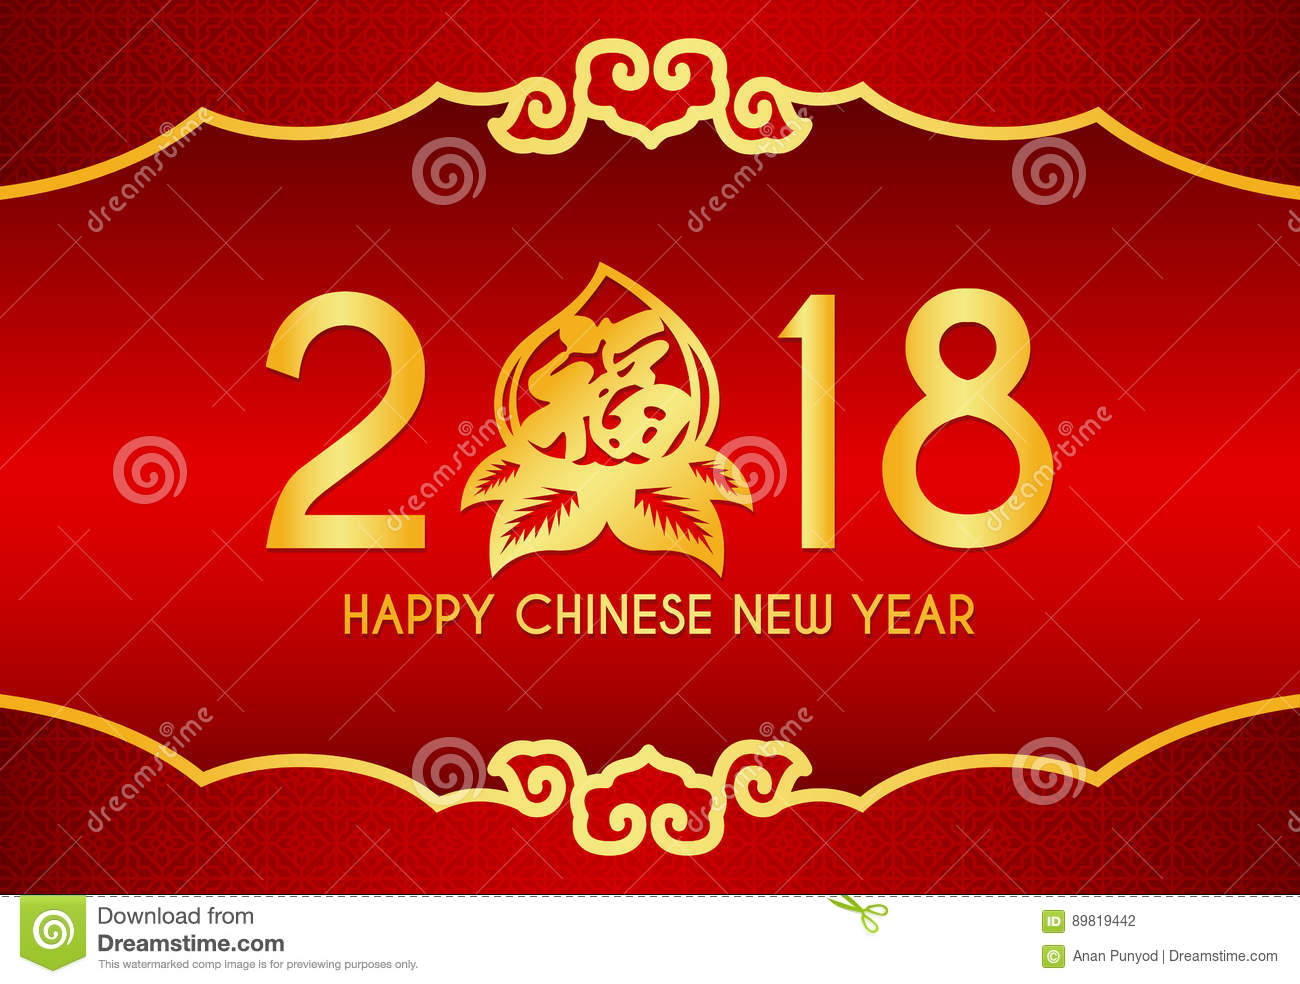 Happy chinese new year card with on 2018 text peach and chiness happy chinese new year card with on 2018 text peach and chiness top and bottom frame vector design chinese word mean blessing kristyandbryce Choice Image